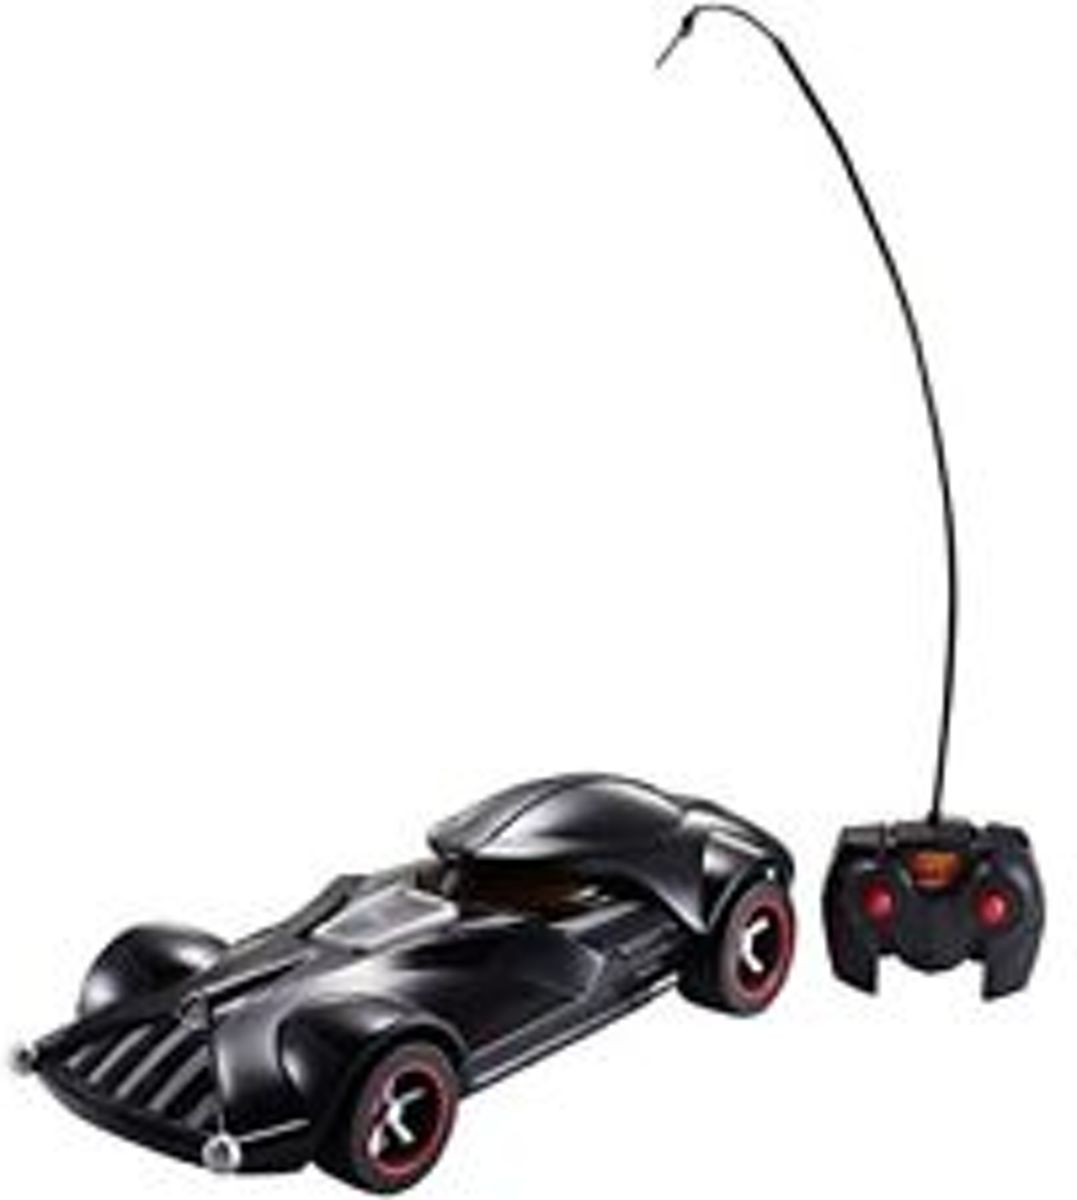 MATTEL Hot Wheels Star Wars: Darth Vader RC voertuig met Lights & Sounds